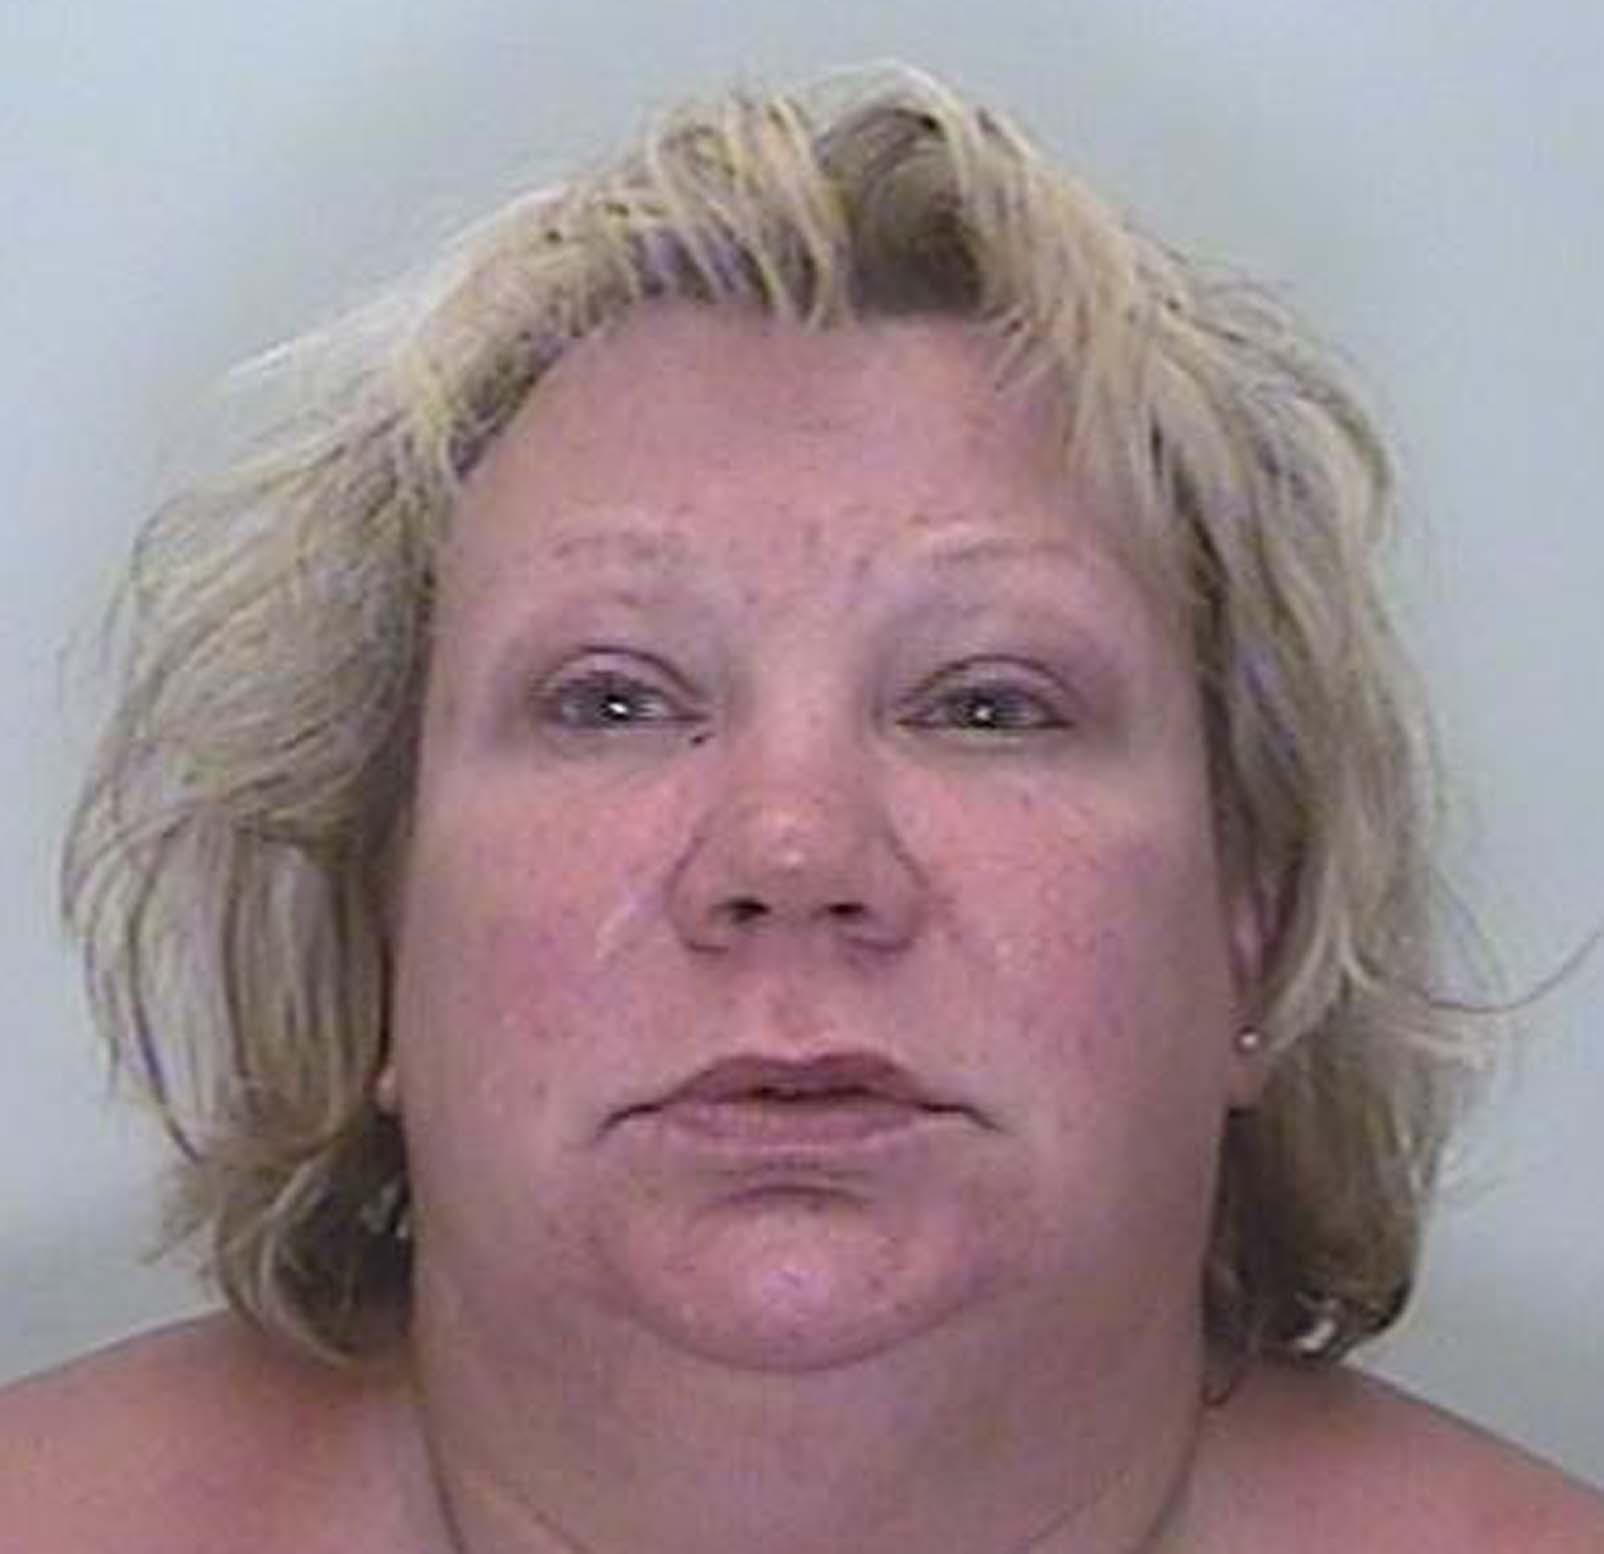 Deborah Mason Plundered More Than 40000 In Benefits She Wasnt Entitled To While